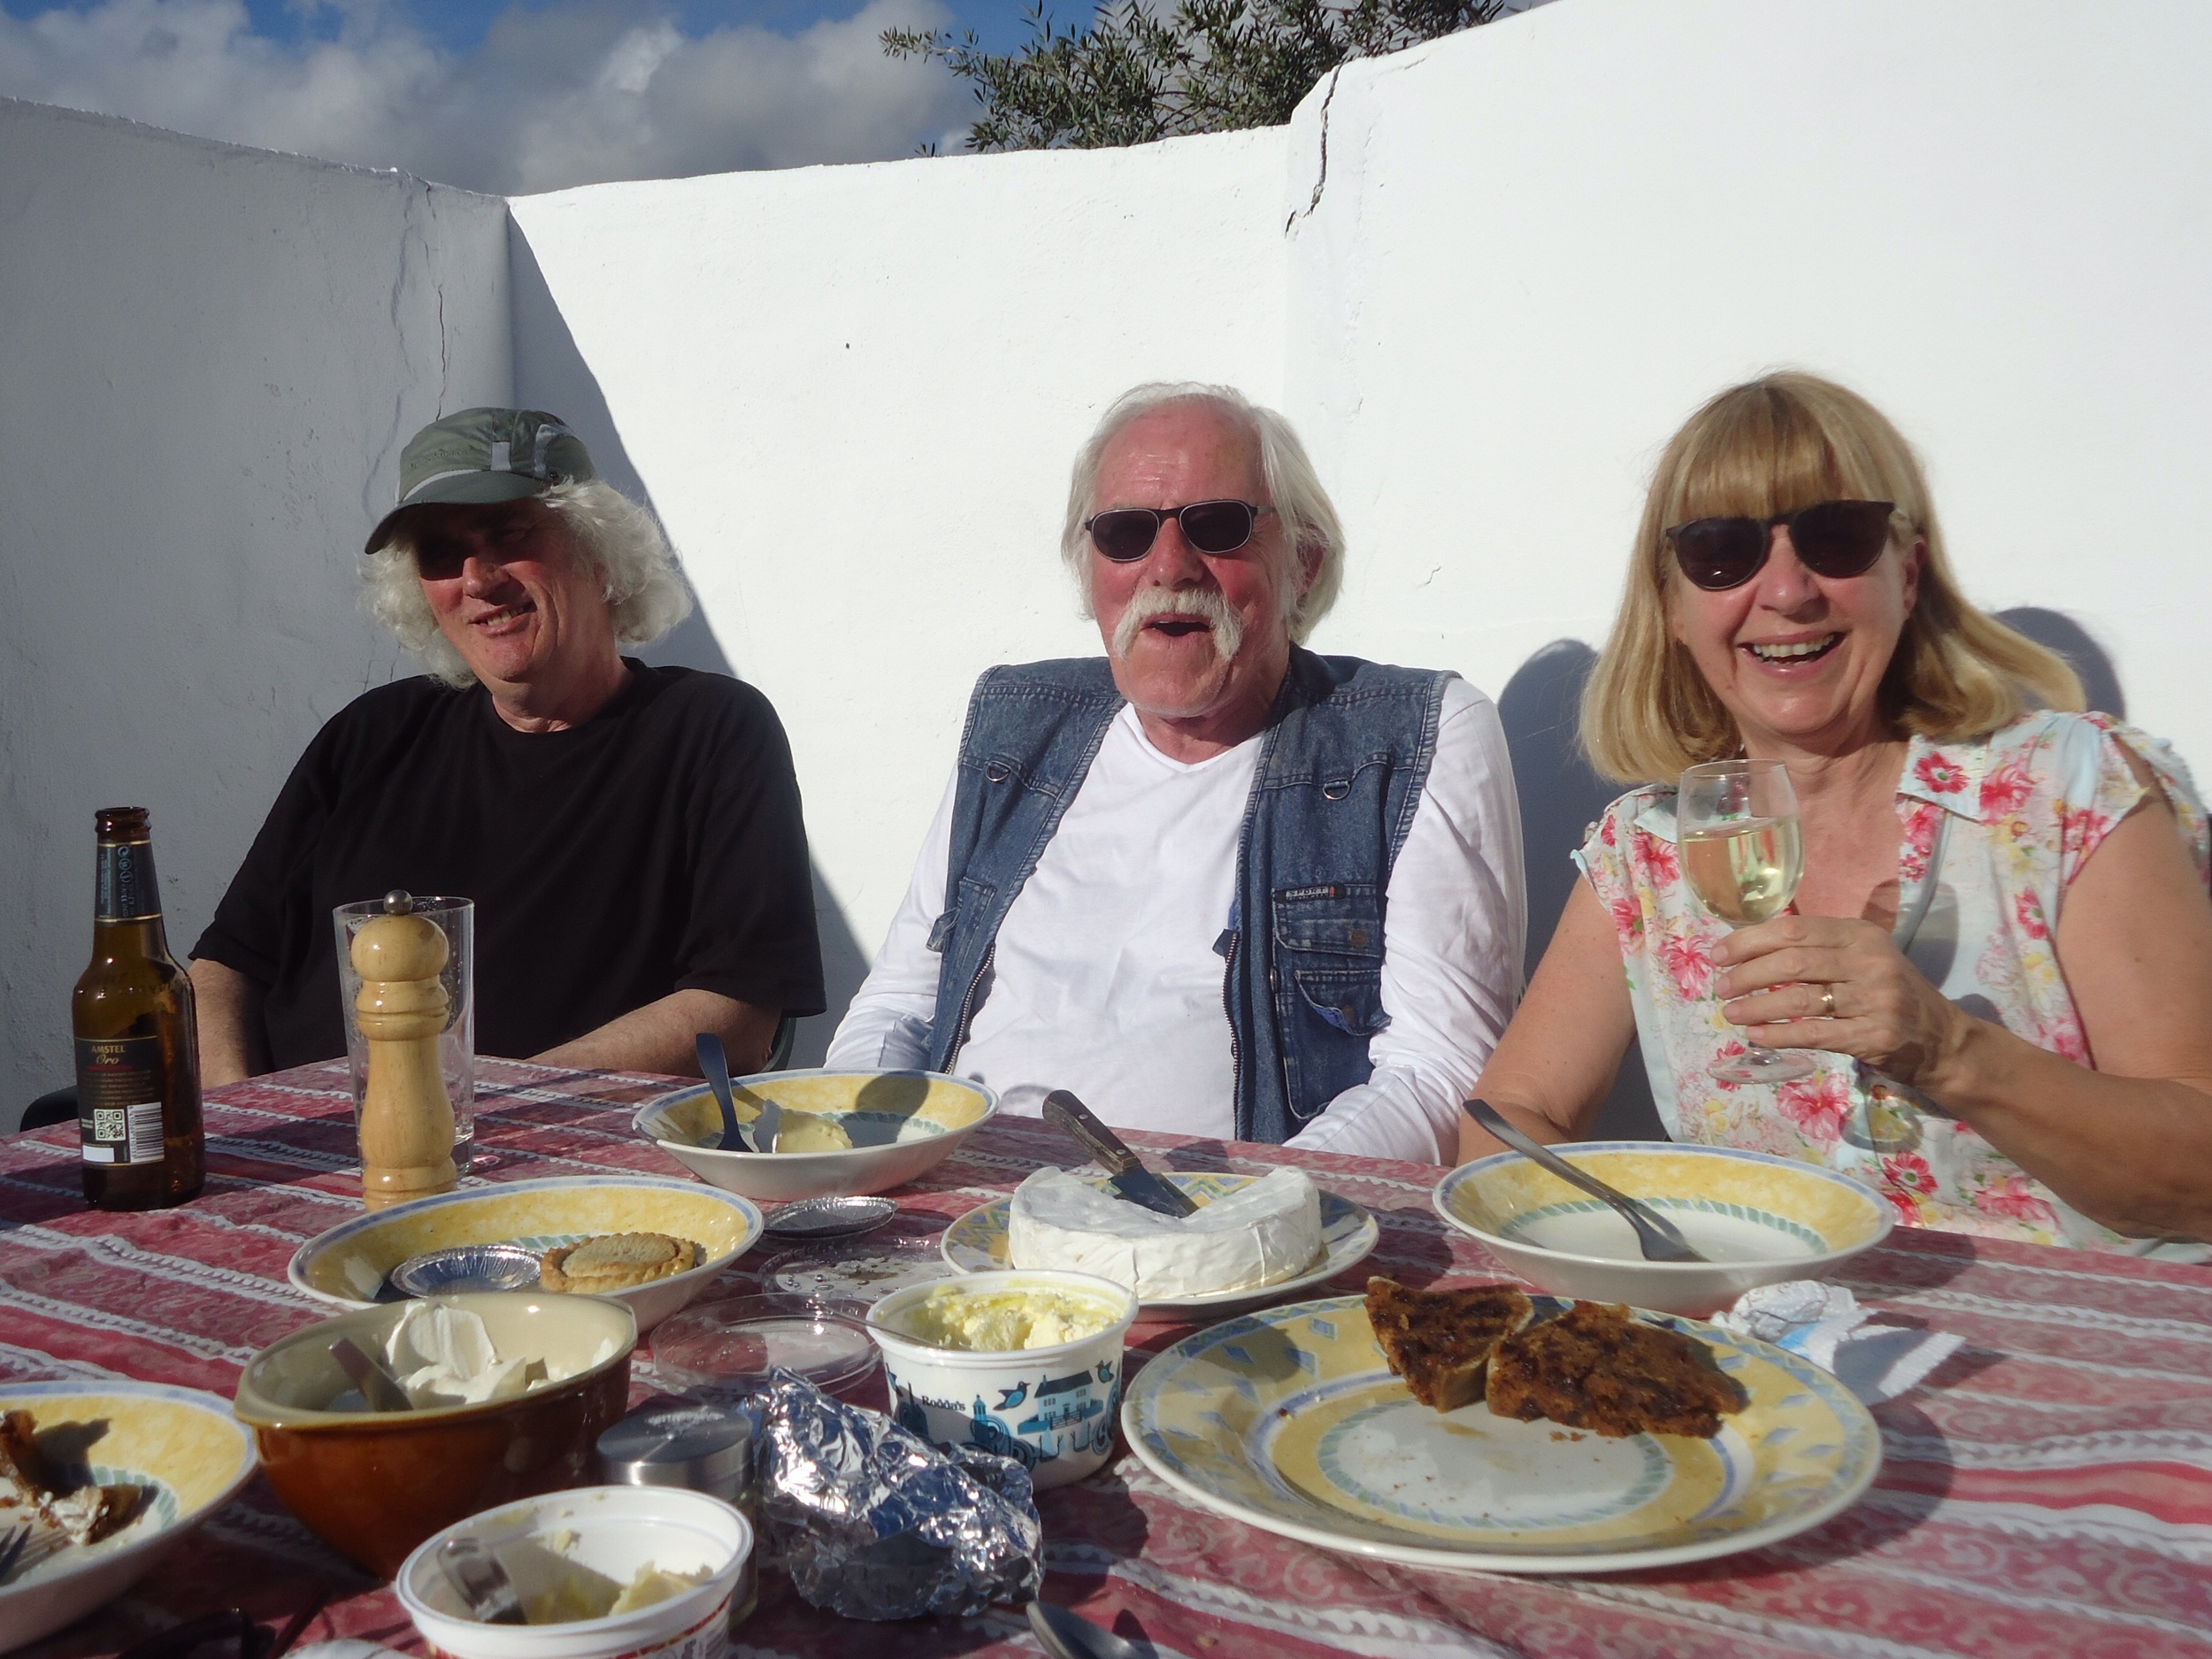 Dick with Anne and David R.